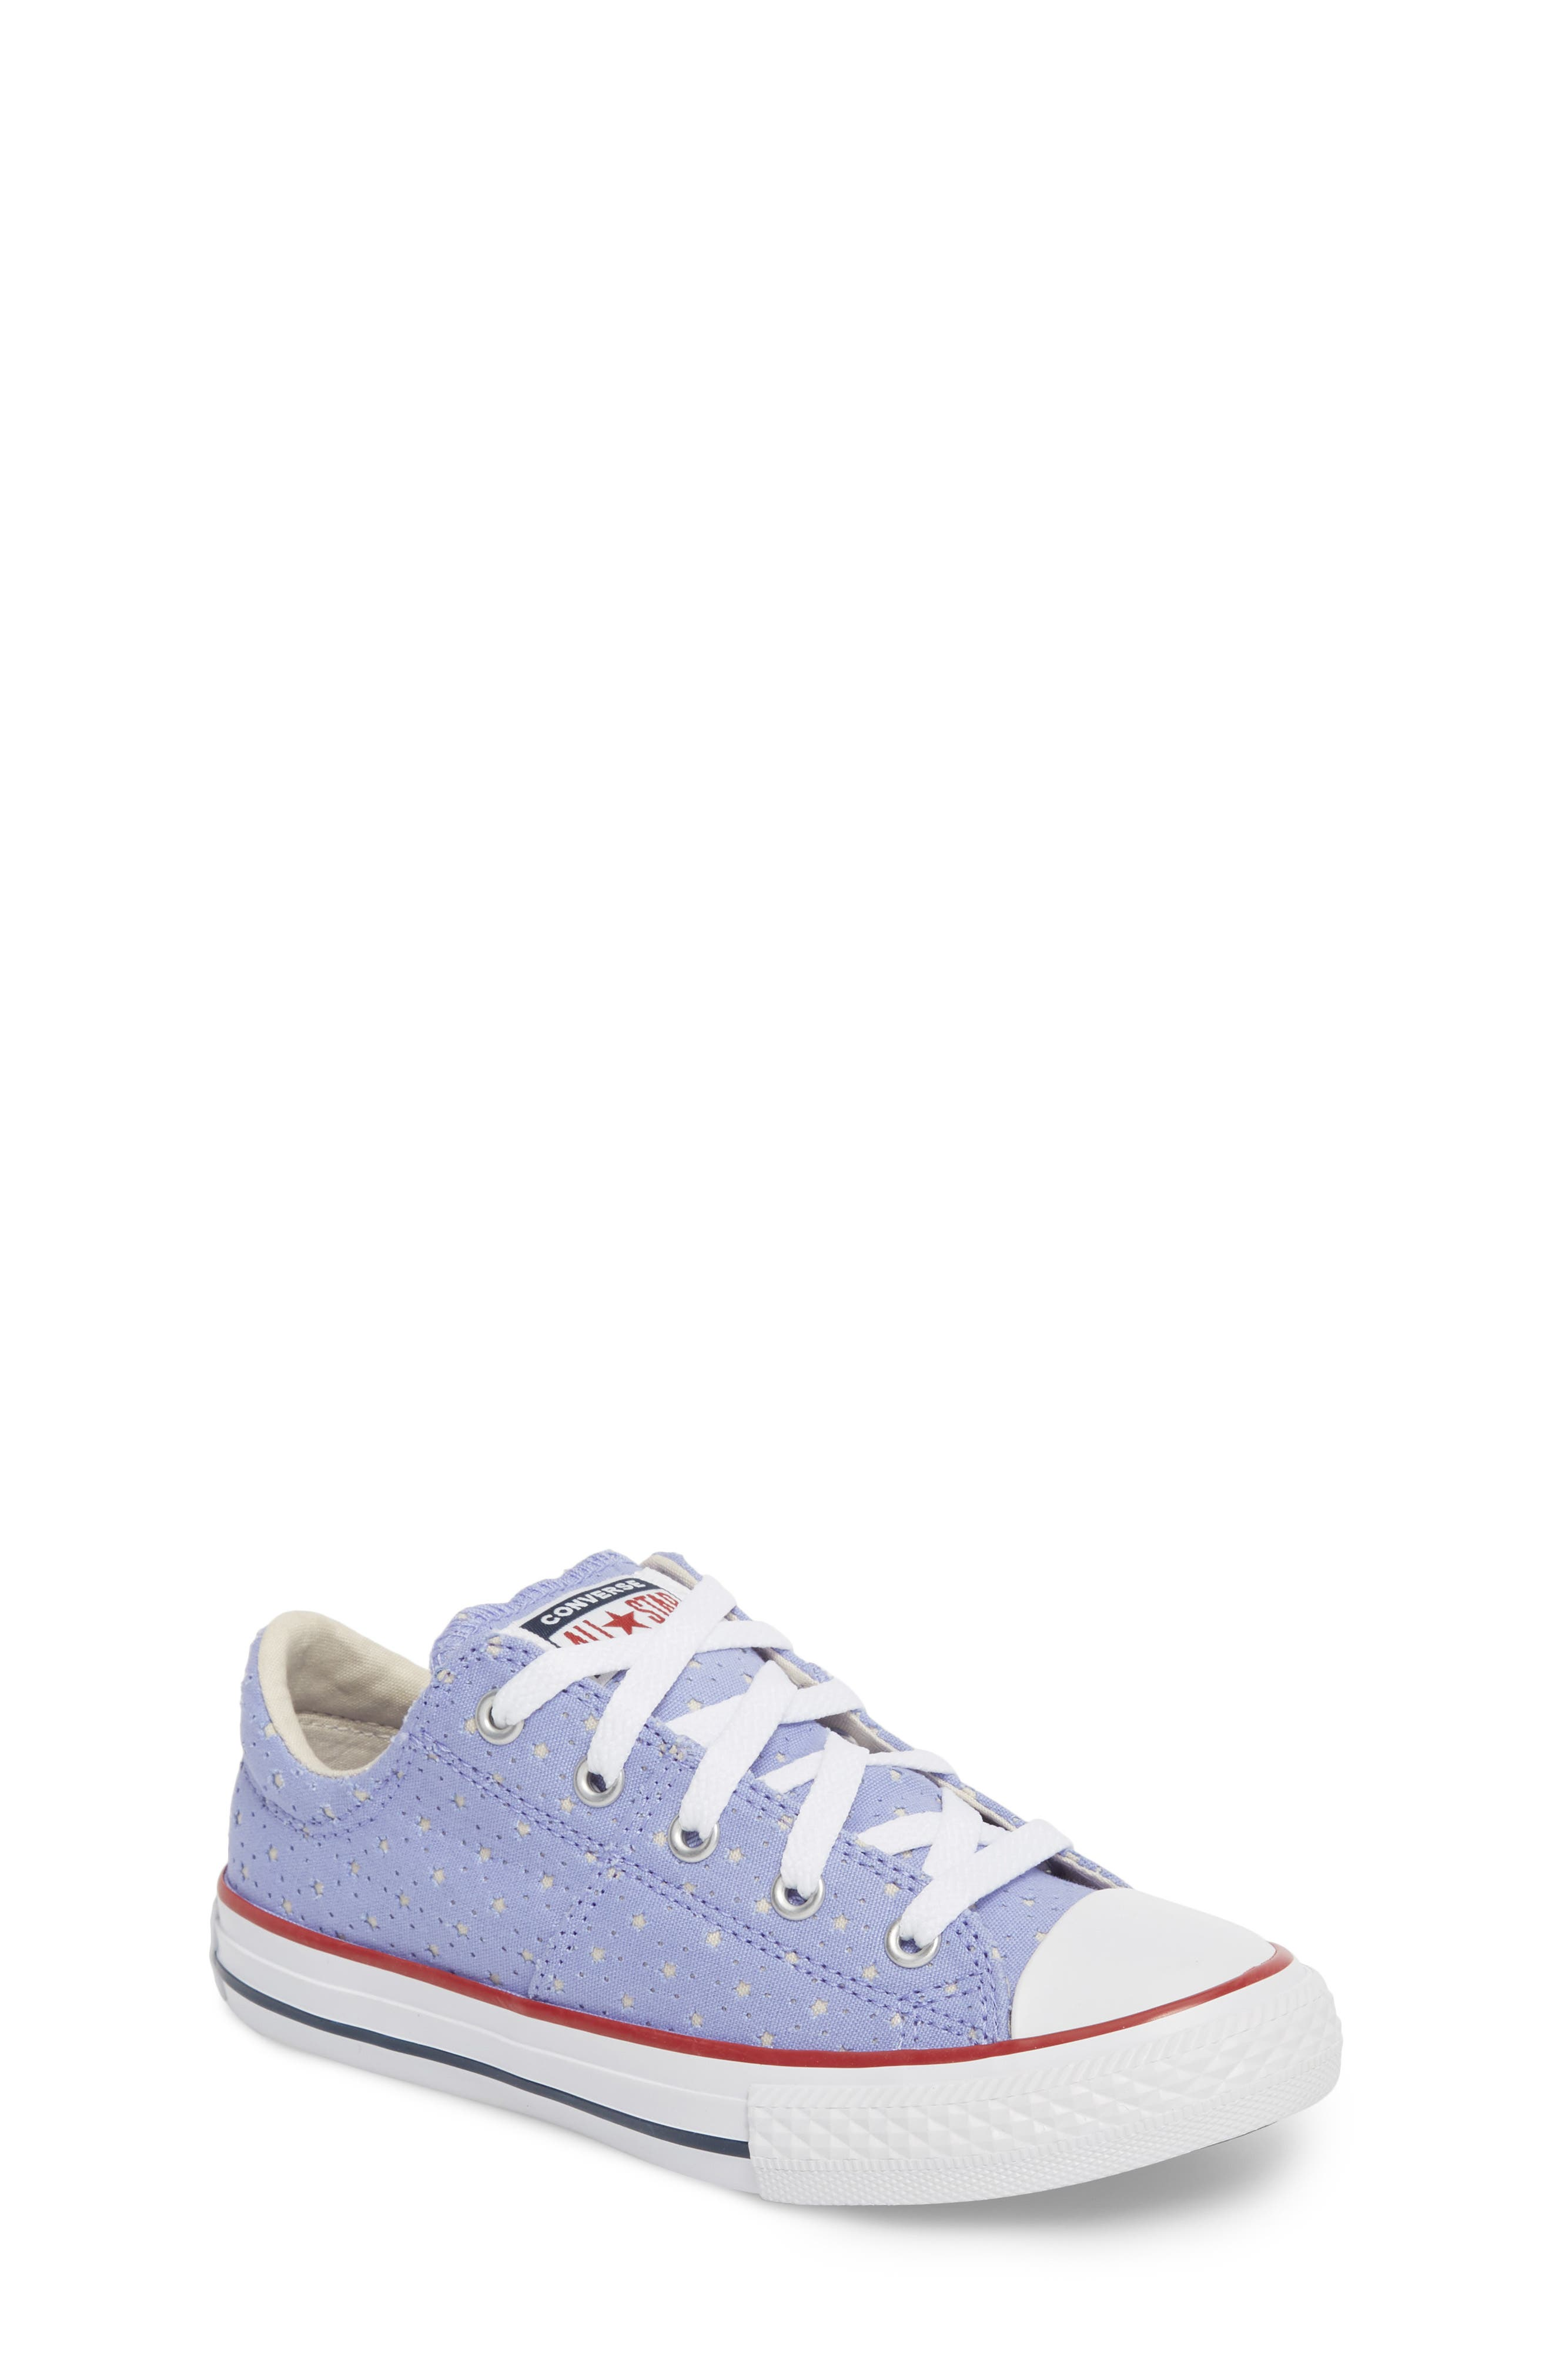 Chuck Taylor<sup>®</sup> All Star<sup>®</sup> Madison Sneaker,                         Main,                         color, Twilight Pulse